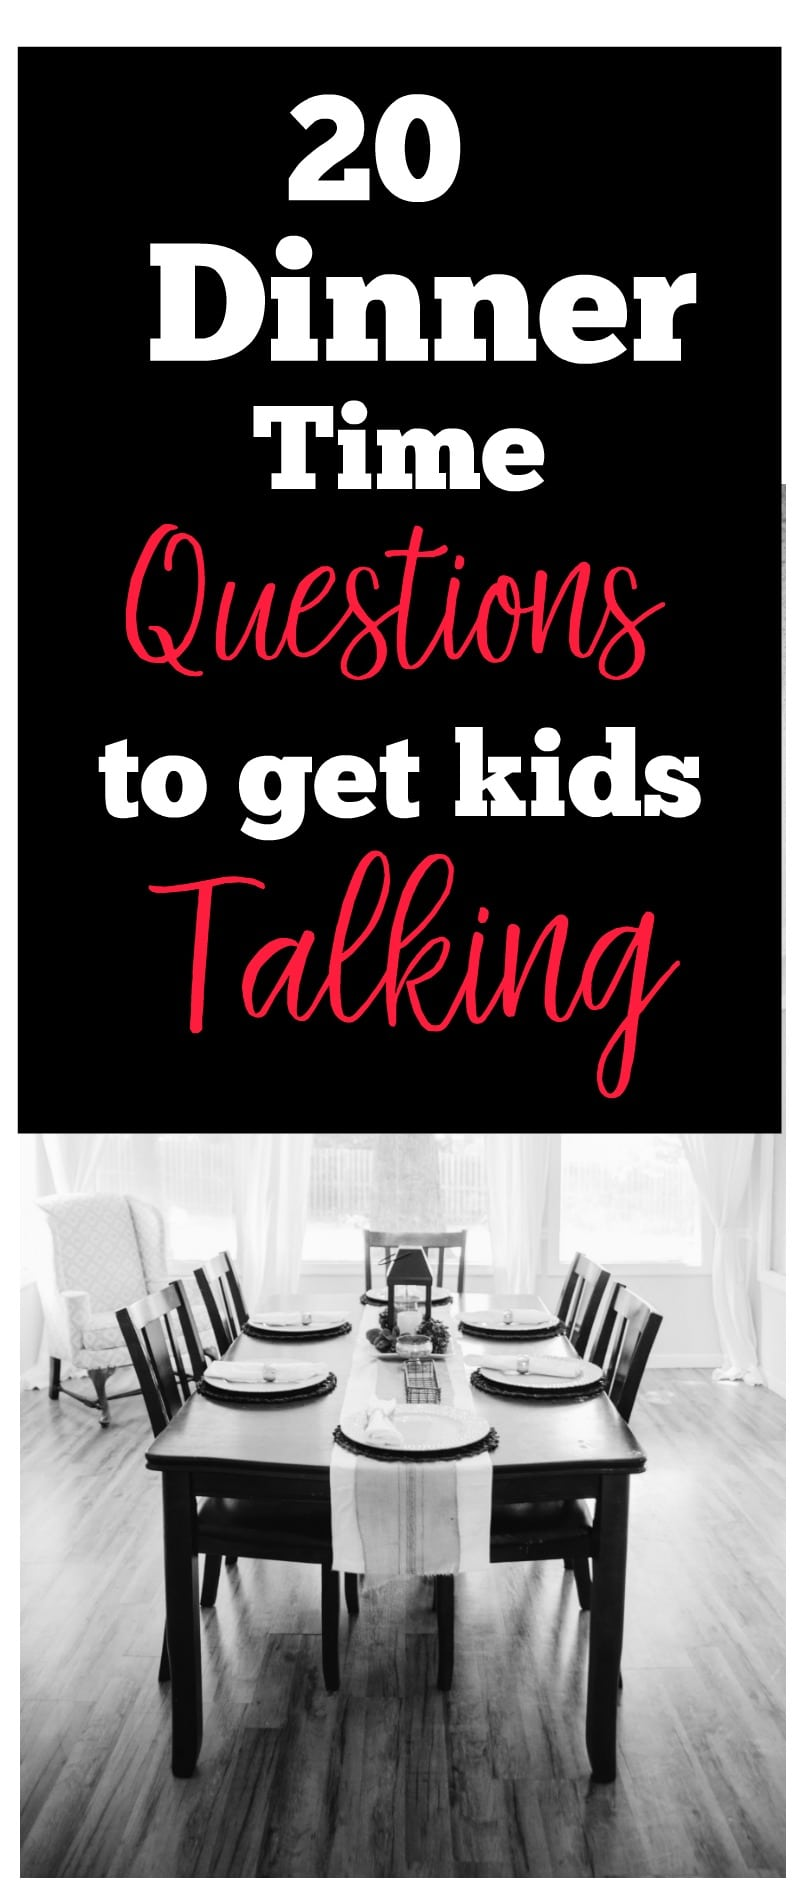 20 Dinner Time Questions to Get Kids Talking #parenting #tips